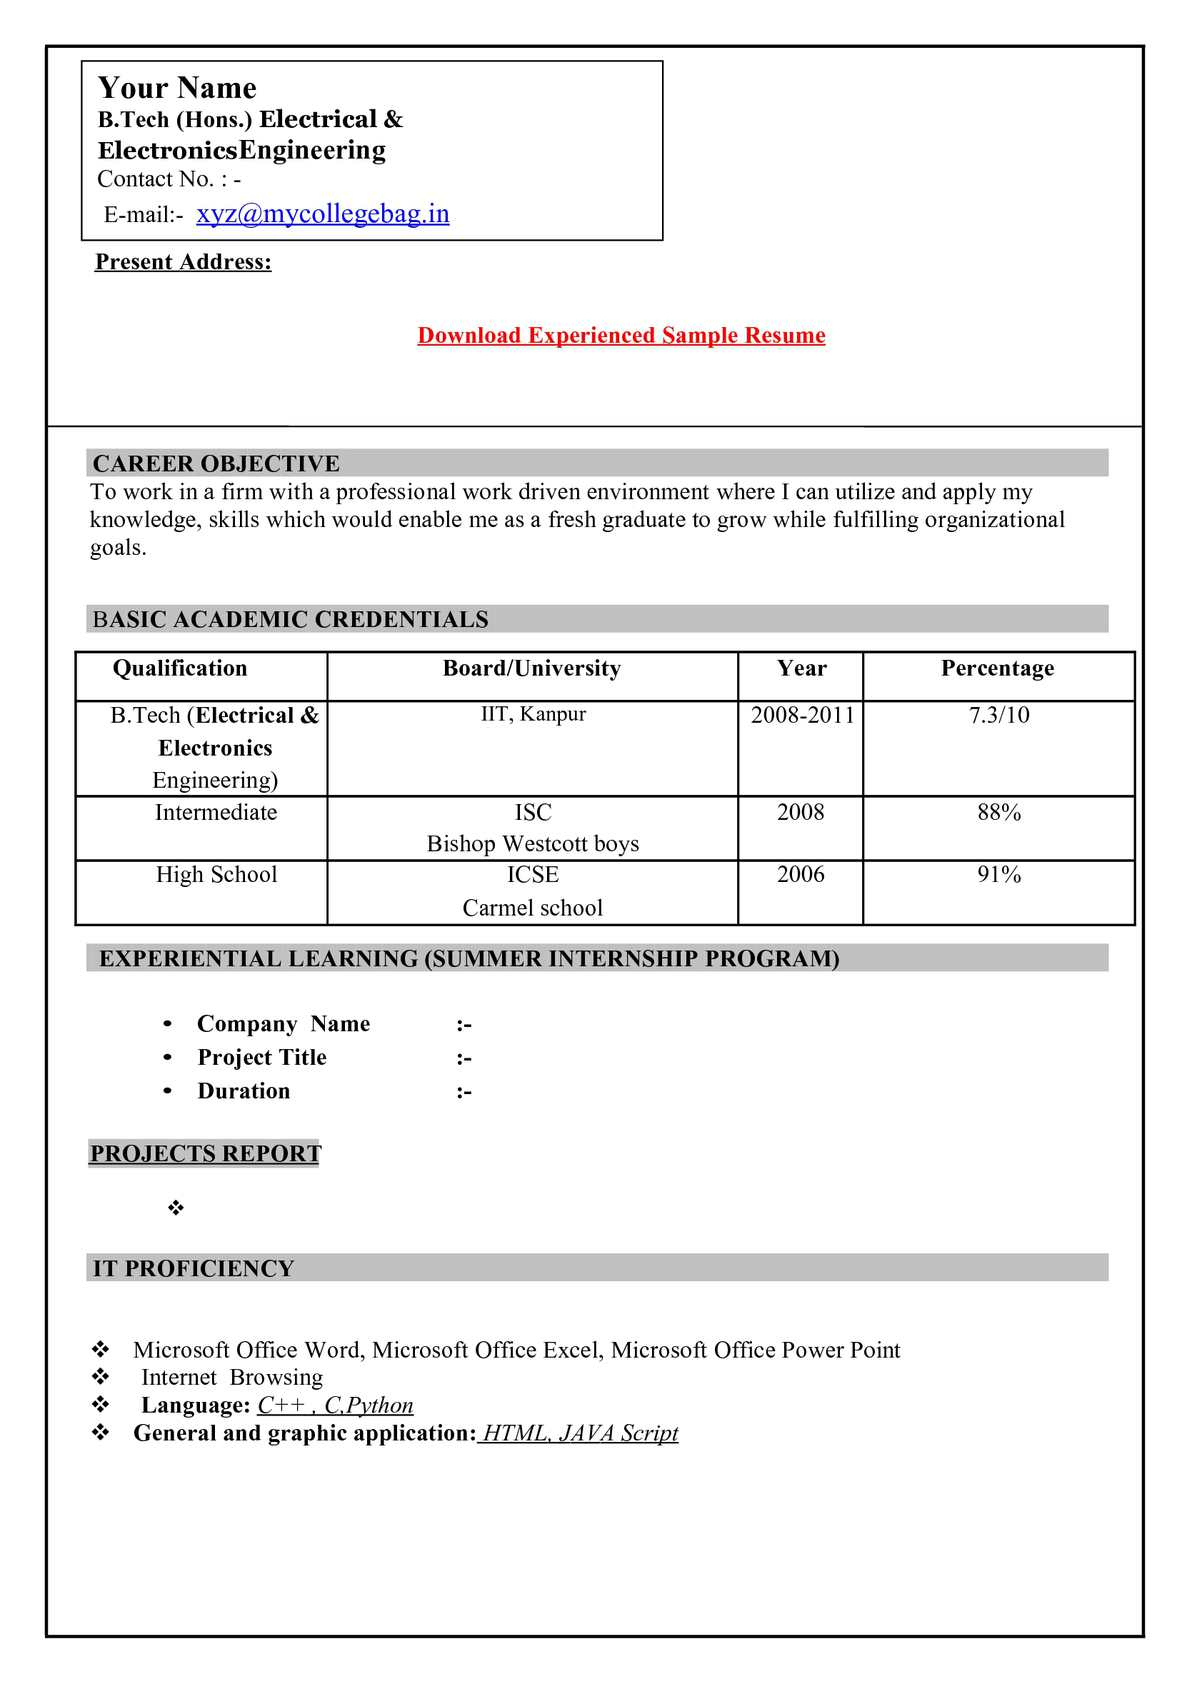 Indian Resume Format For Freshers Engineers Calaméo Resume Format For Freshers Download